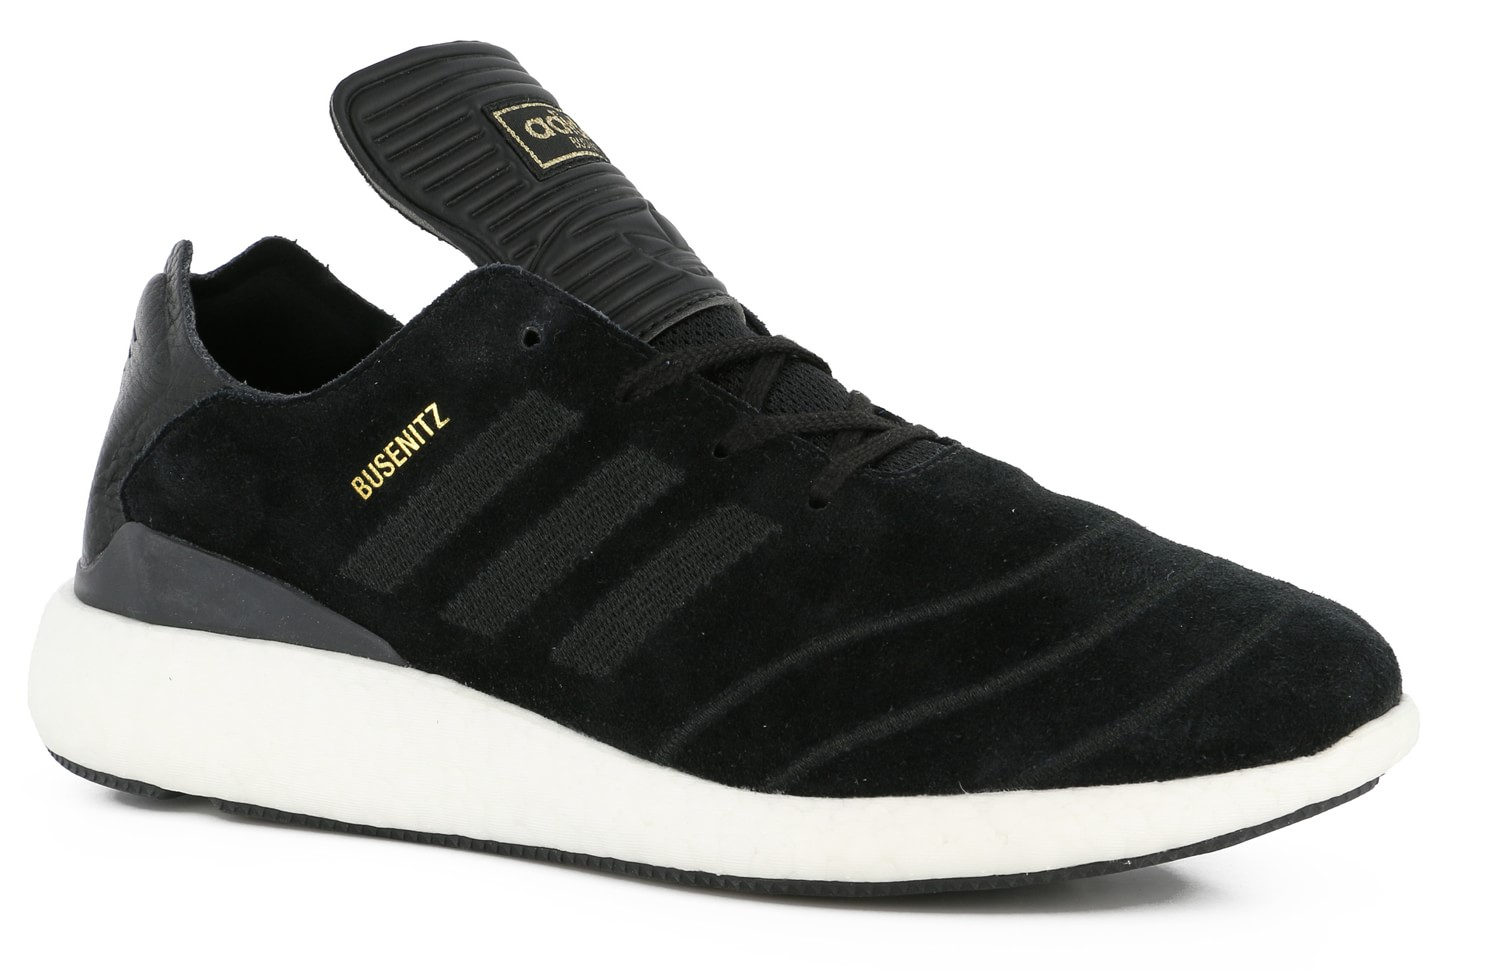 3d896b015642e What if the adidas Busentiz and Pure Boost Had a Baby  - WearTesters